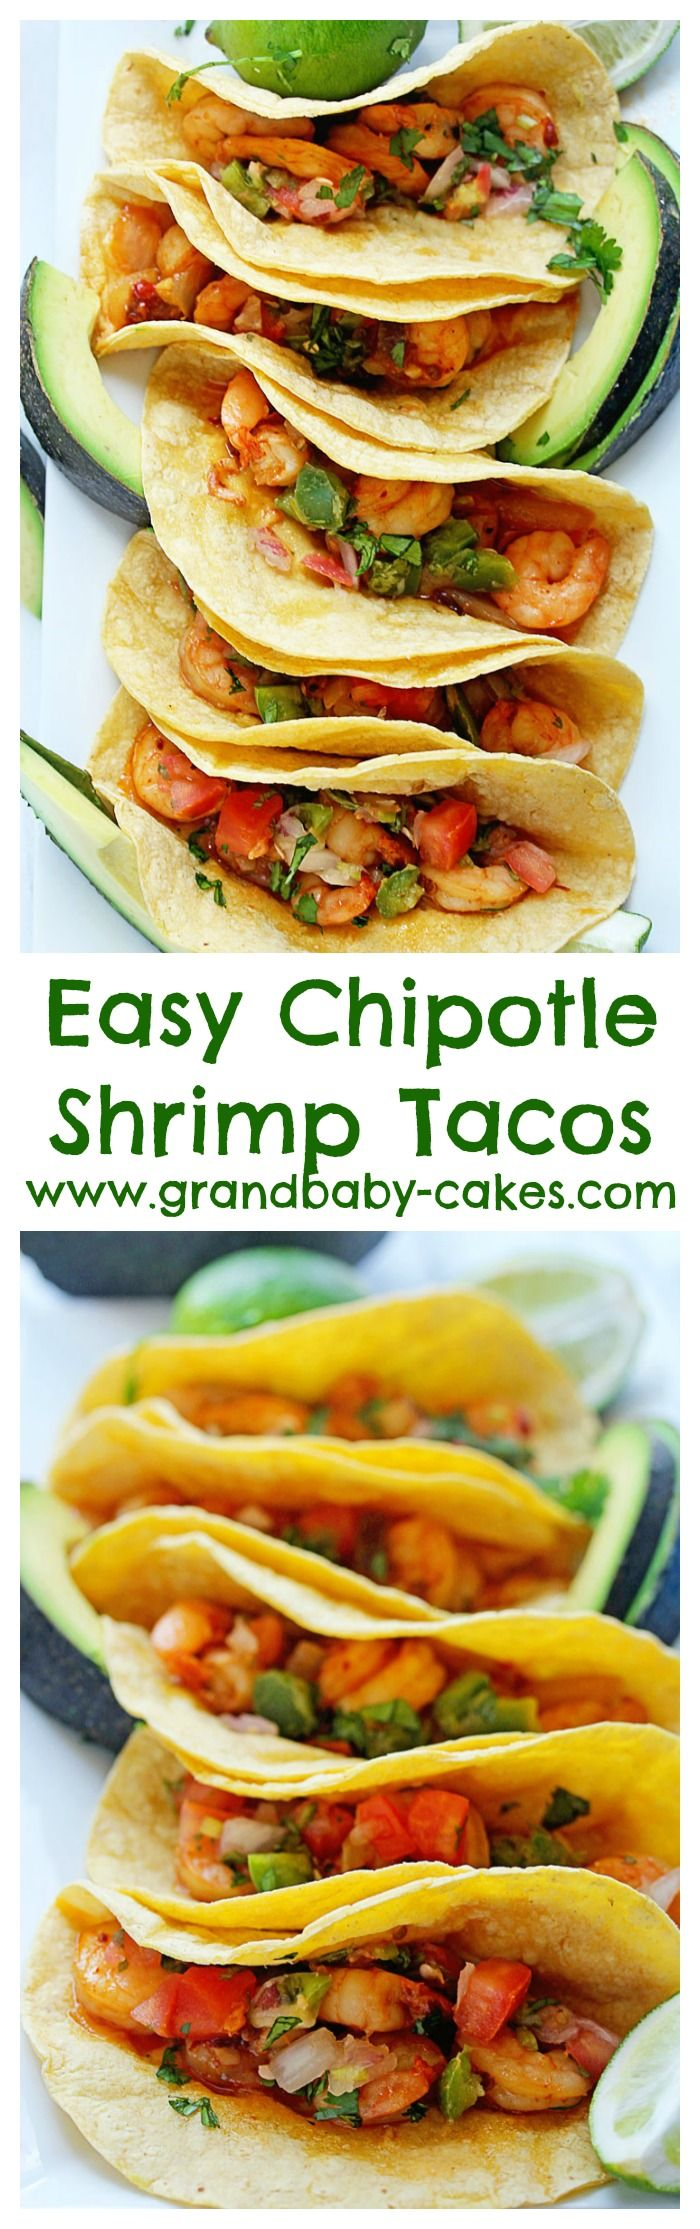 Easy Chipotle Shrimp Tacos  You won  39 t believe how fast this recipe is  And so delicious   spon  ziploc   http   www grandbaby cakes com